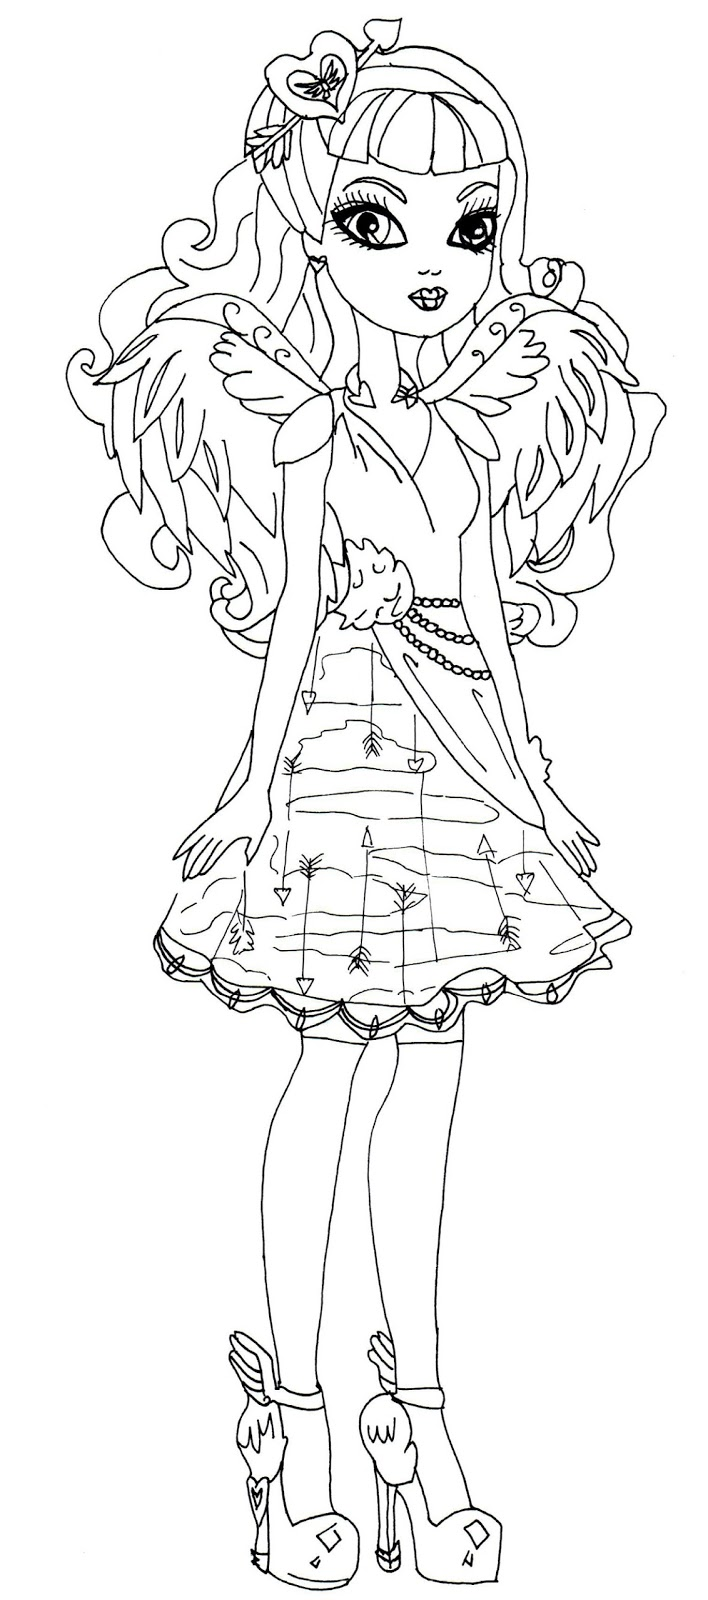 Free Printable Ever After High Coloring Pages September 2013